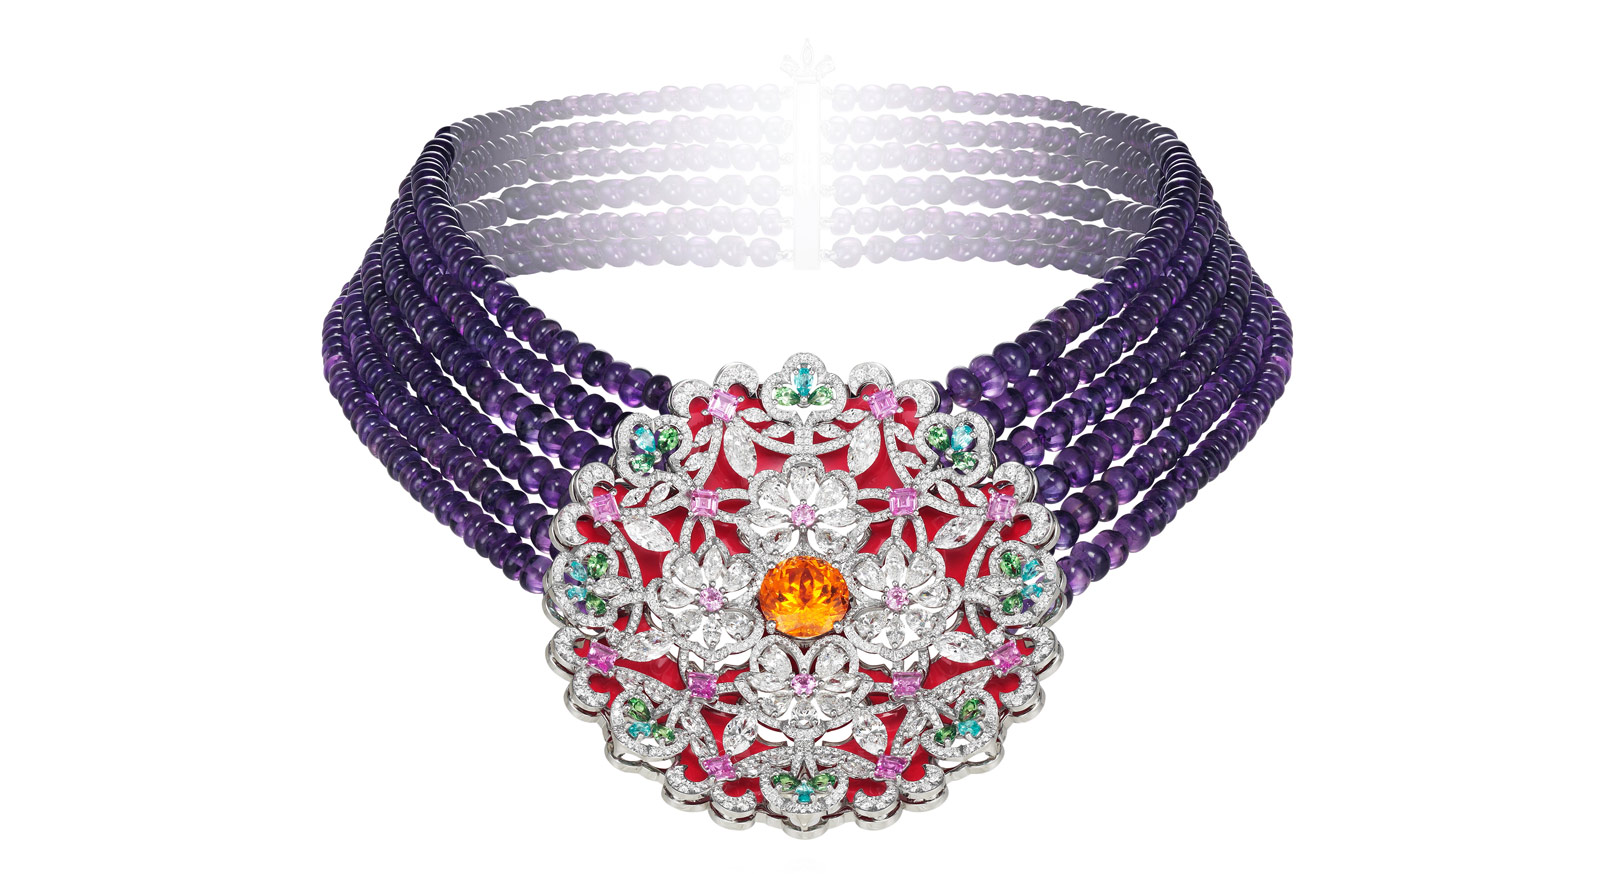 Silk Road necklace by Chopard created in collaboration with Guo Pei